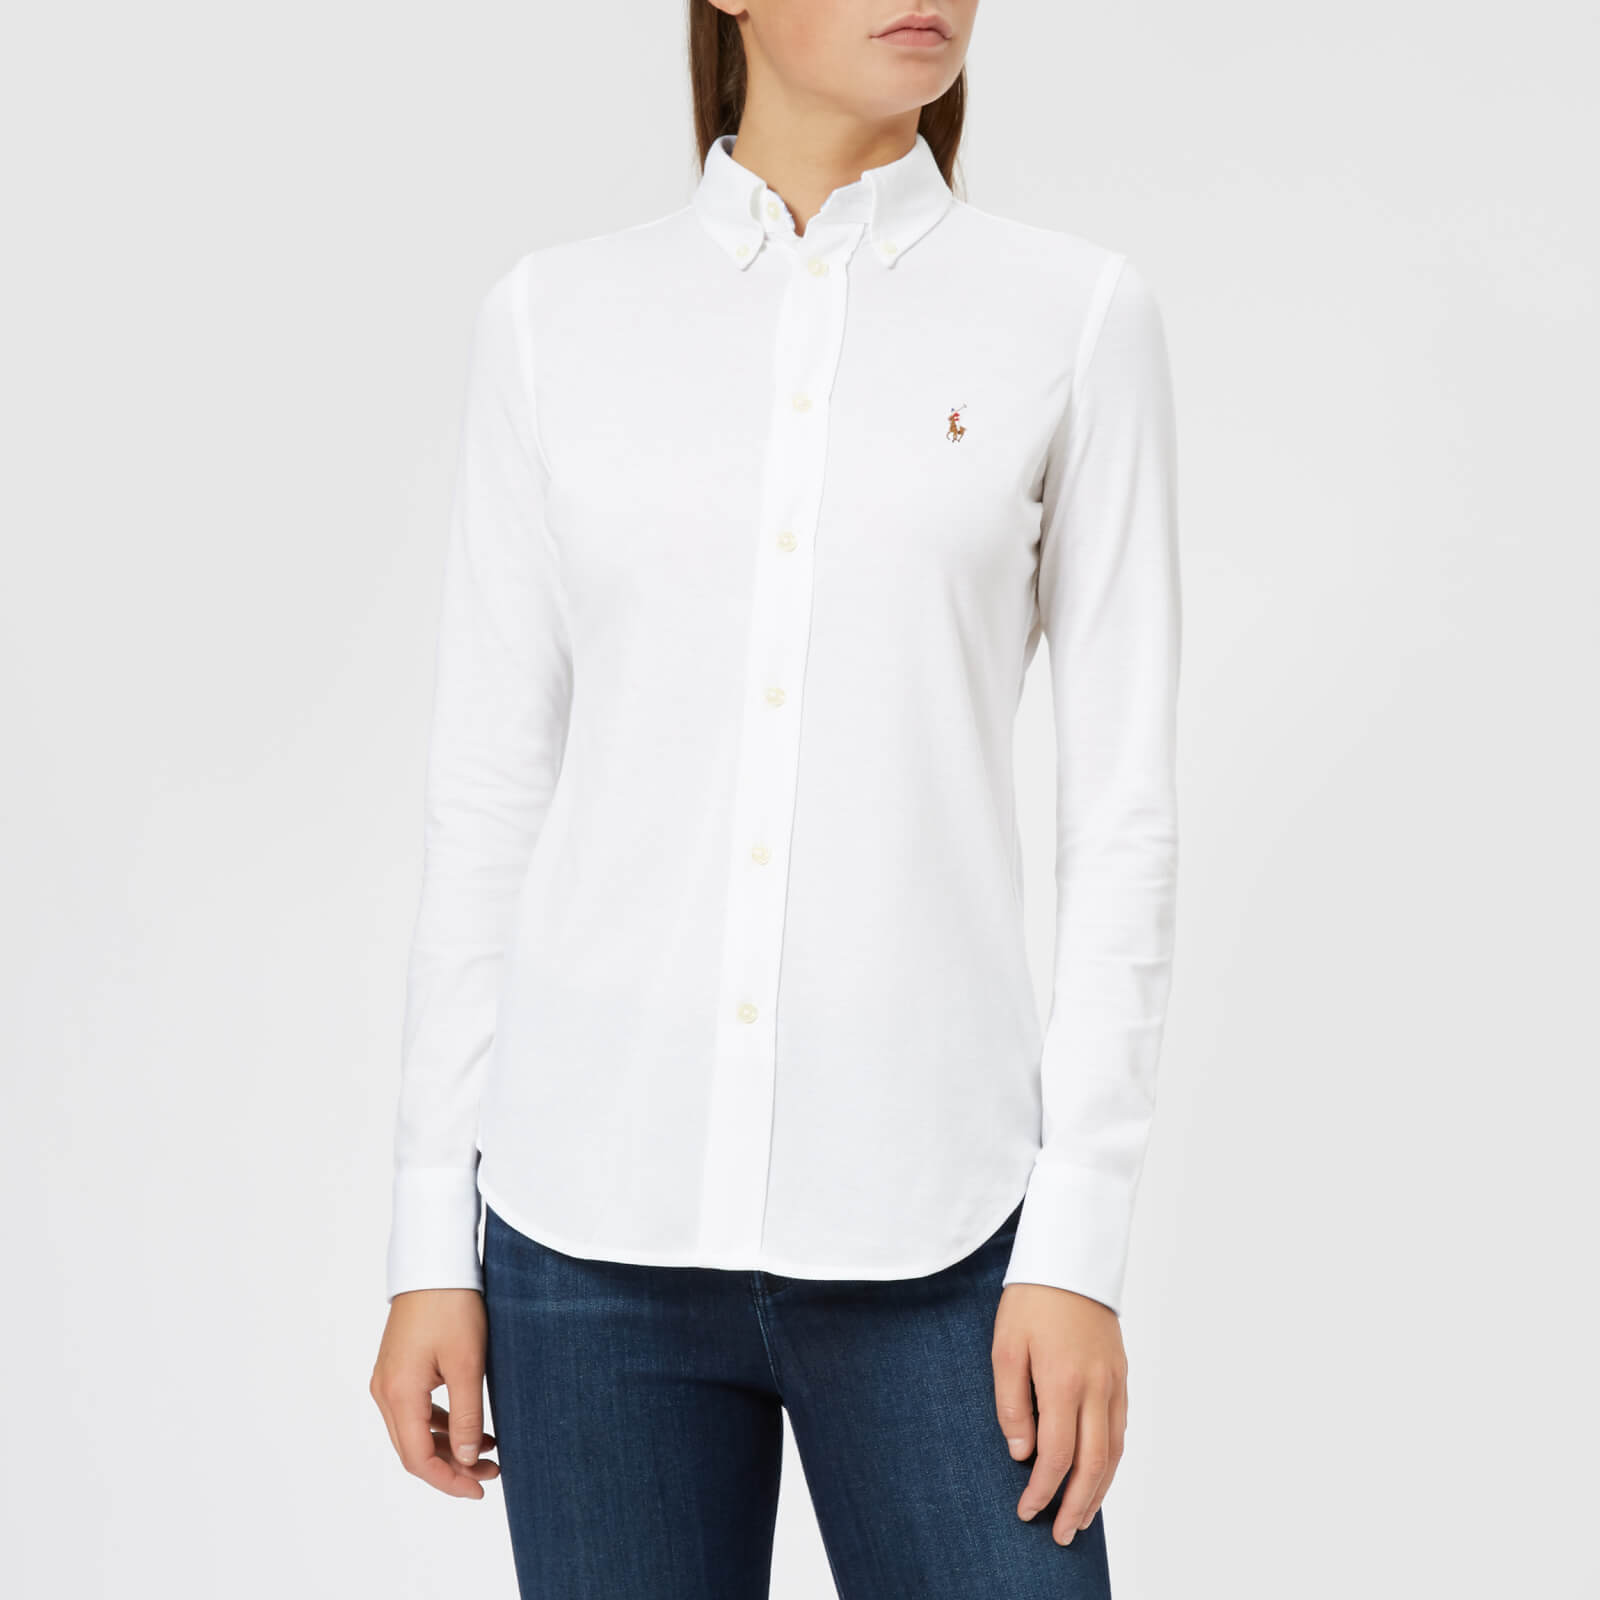 d9a78338366 Polo Ralph Lauren Women's Heidi Skinny Fit Stretch Shirt - White - Free UK  Delivery over £50